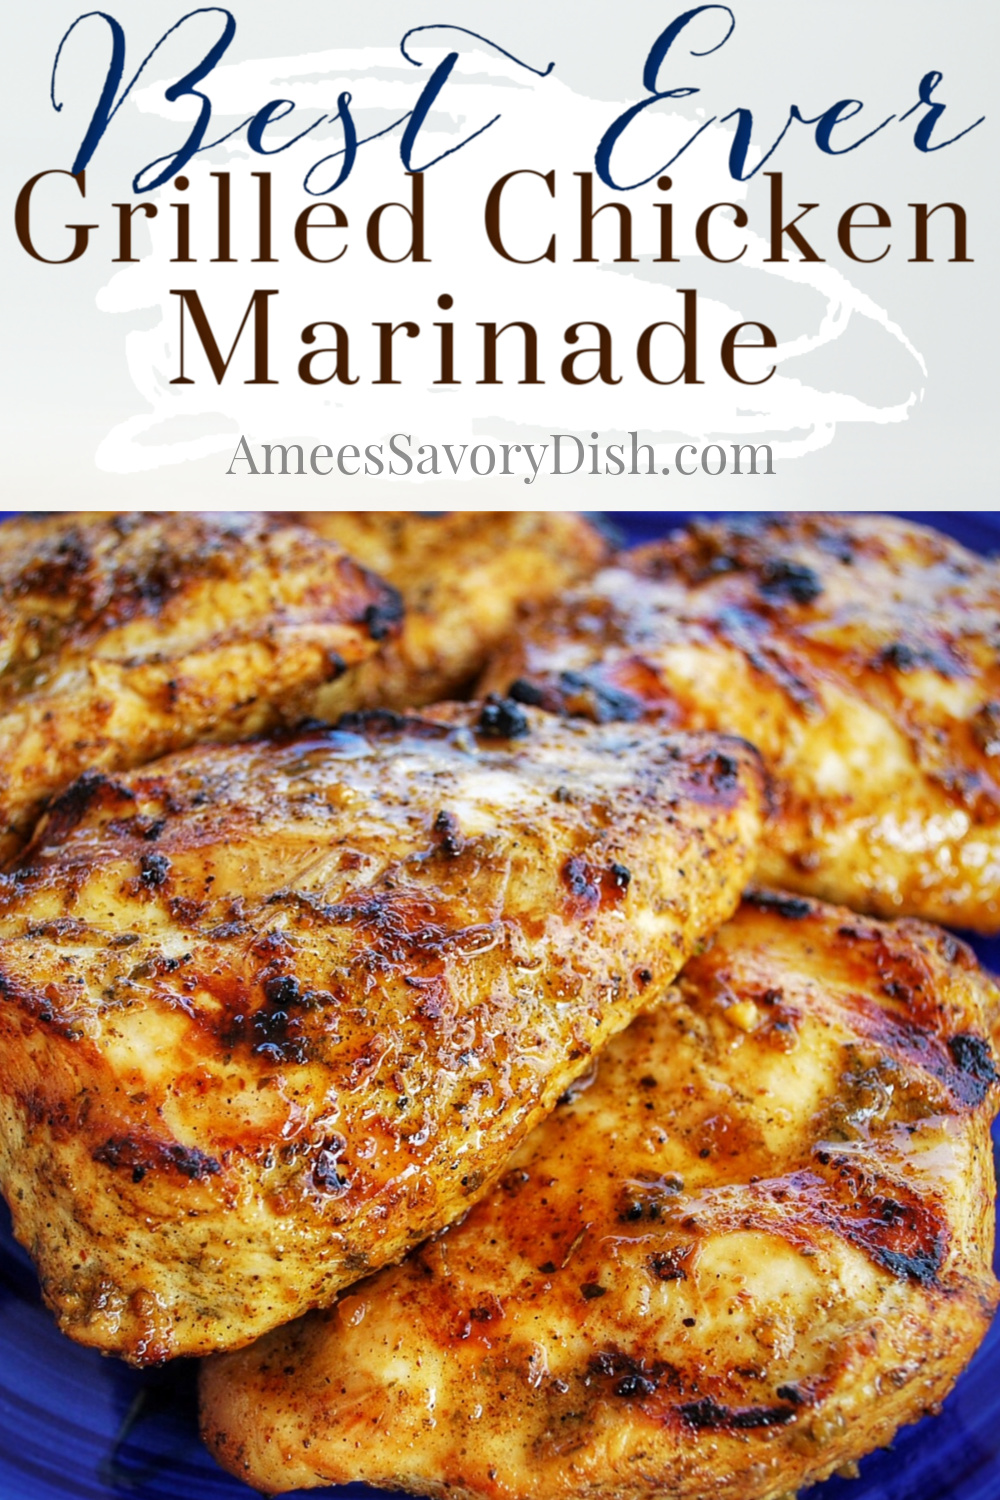 This best ever grilled chicken marinade recipe goes great with chicken, beef, or pork and is fast and easy to whip together! #marinaderecipe #chickenmarinade #bestmarinade #grilledchicken #grillrecipe via @Ameessavorydish